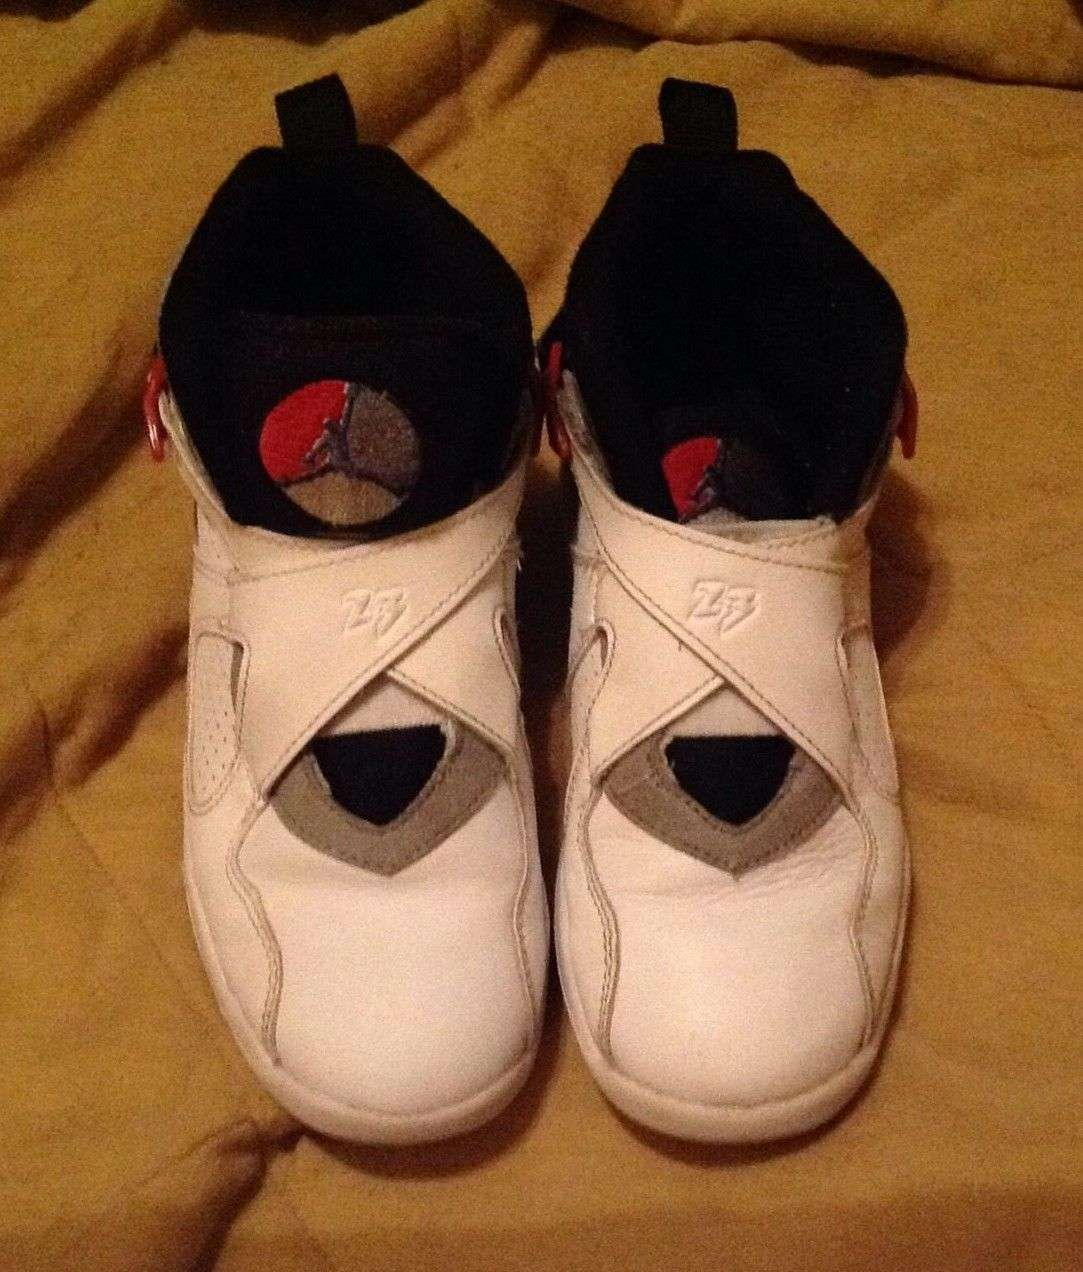 8a66b7c8bcbf09 AIR JORDAN RETRO VIII 8 2013 WHITE-BLACK-RED 305369-193 Bugs Bunny EUC Sz1  For Sale - Item  1091553